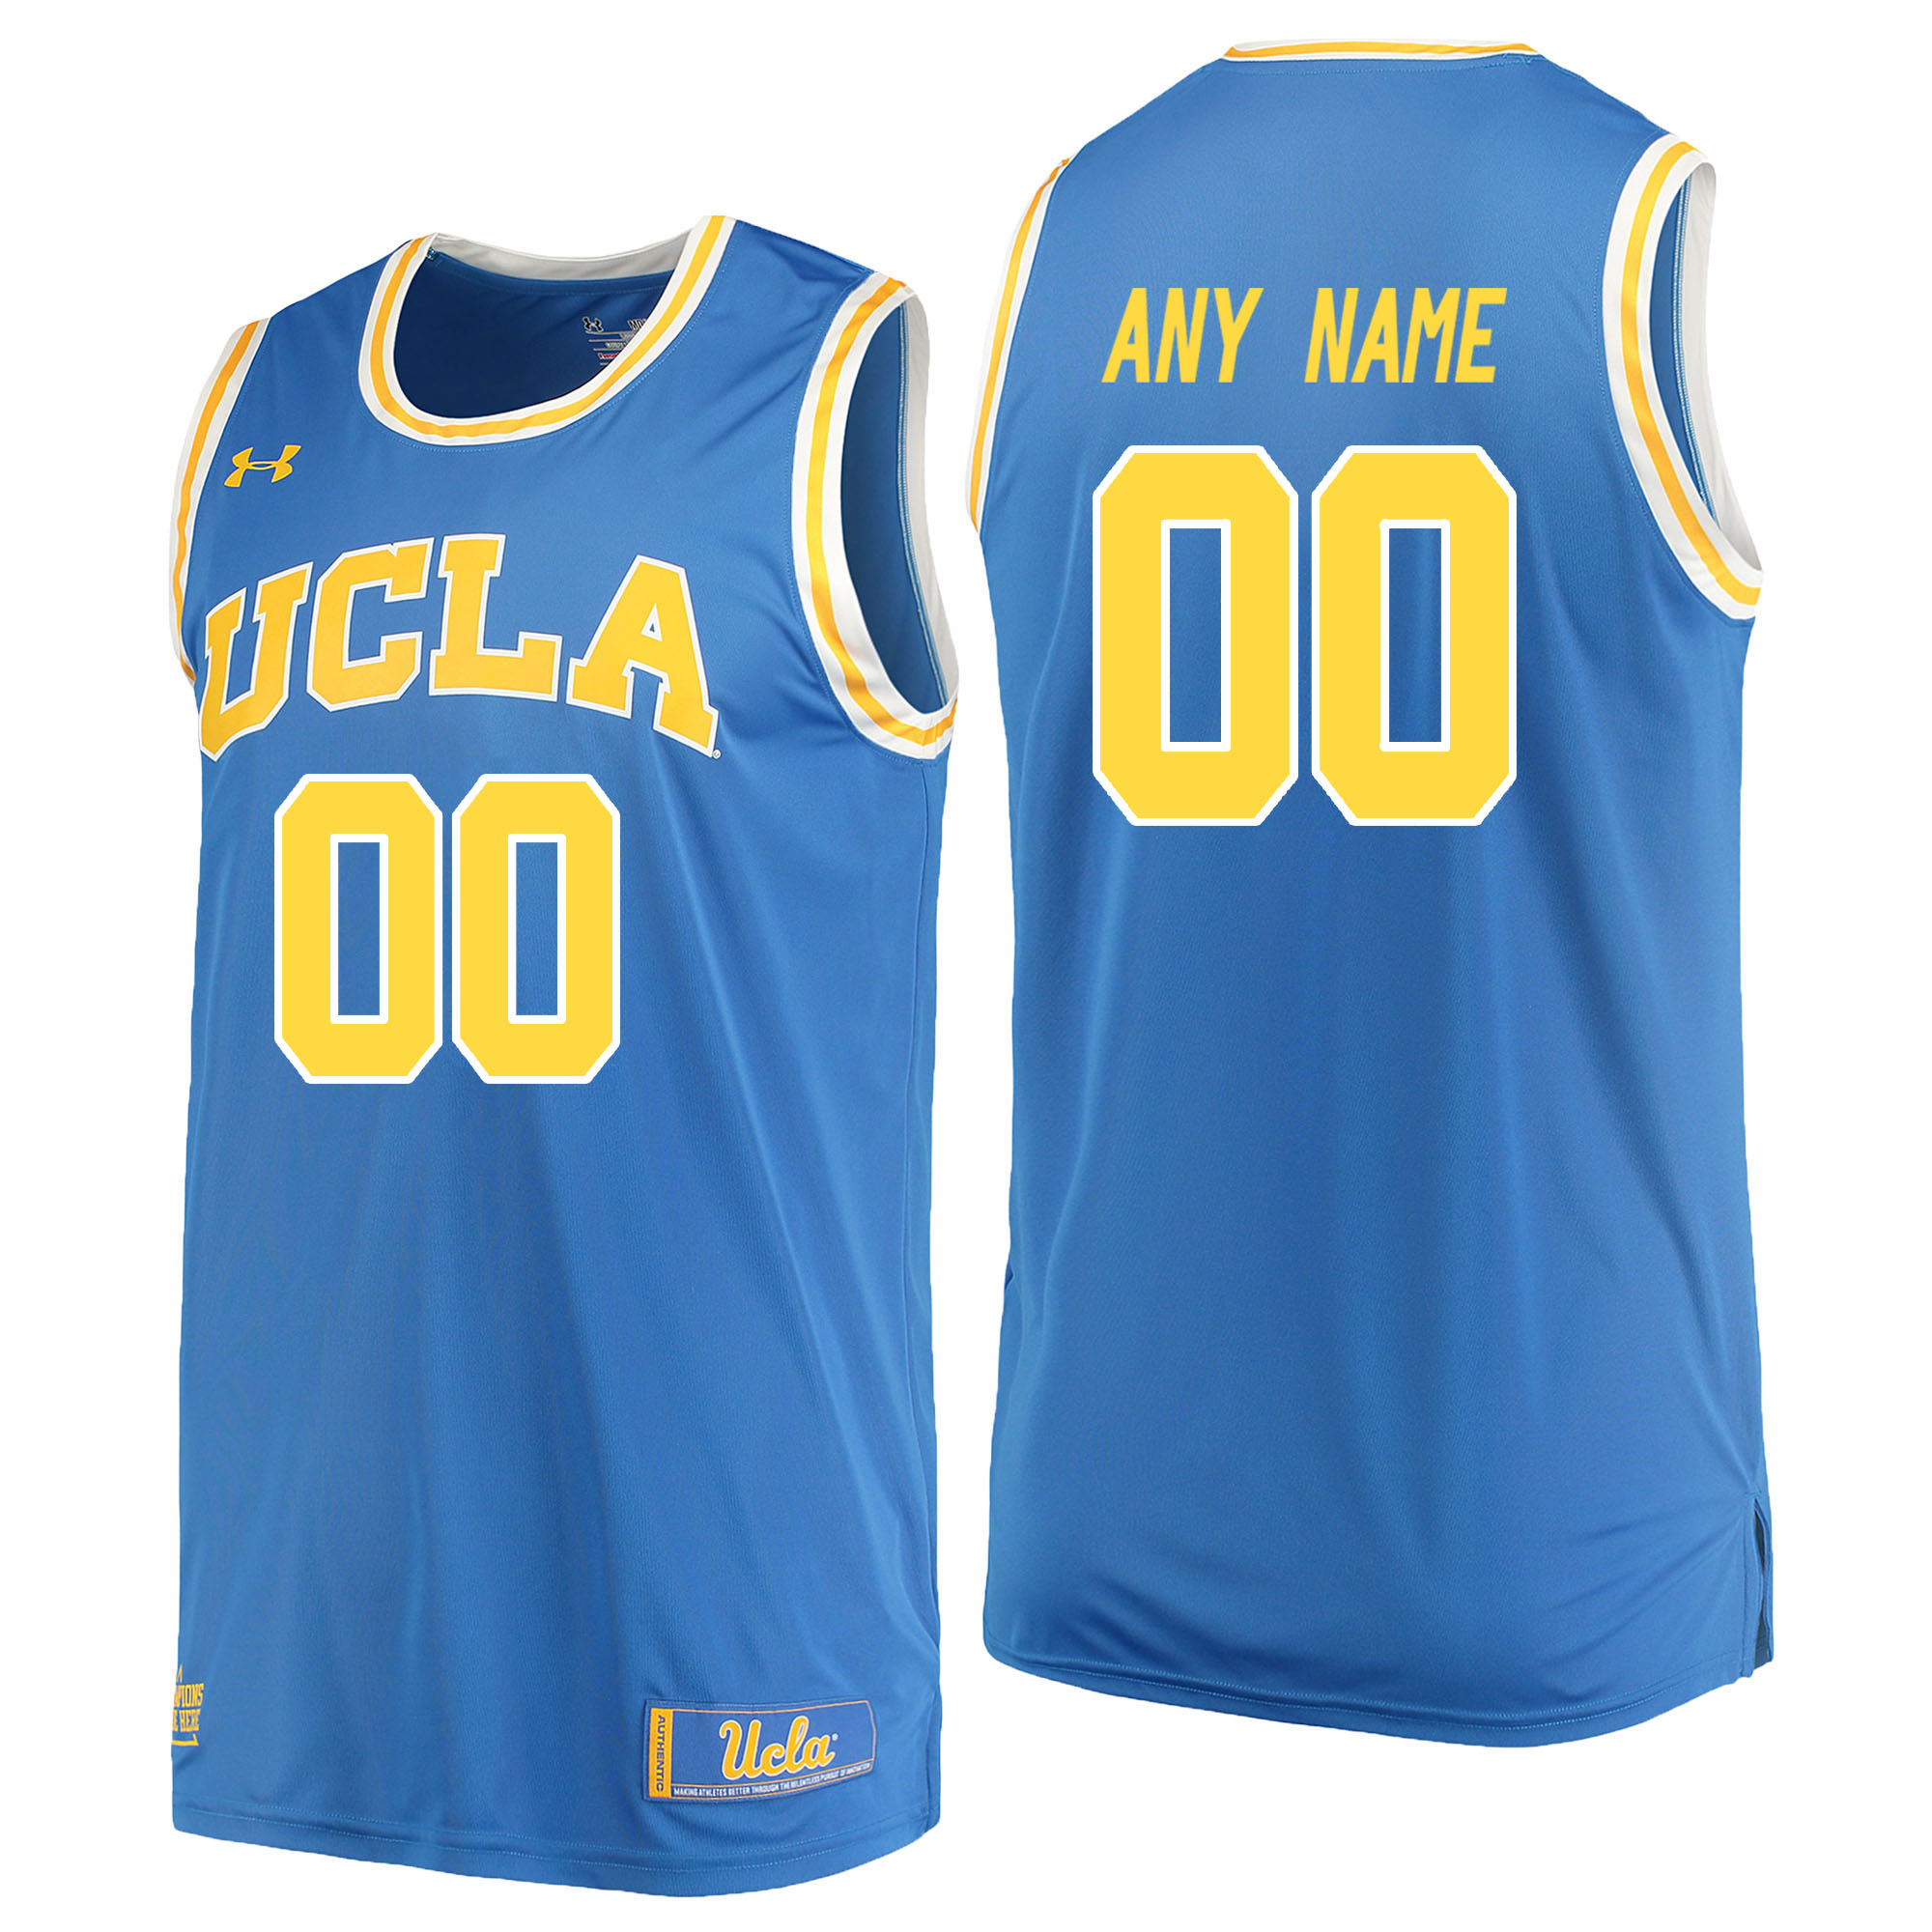 UCLA Bruins Blue Men's Customized College Basketball Jersey